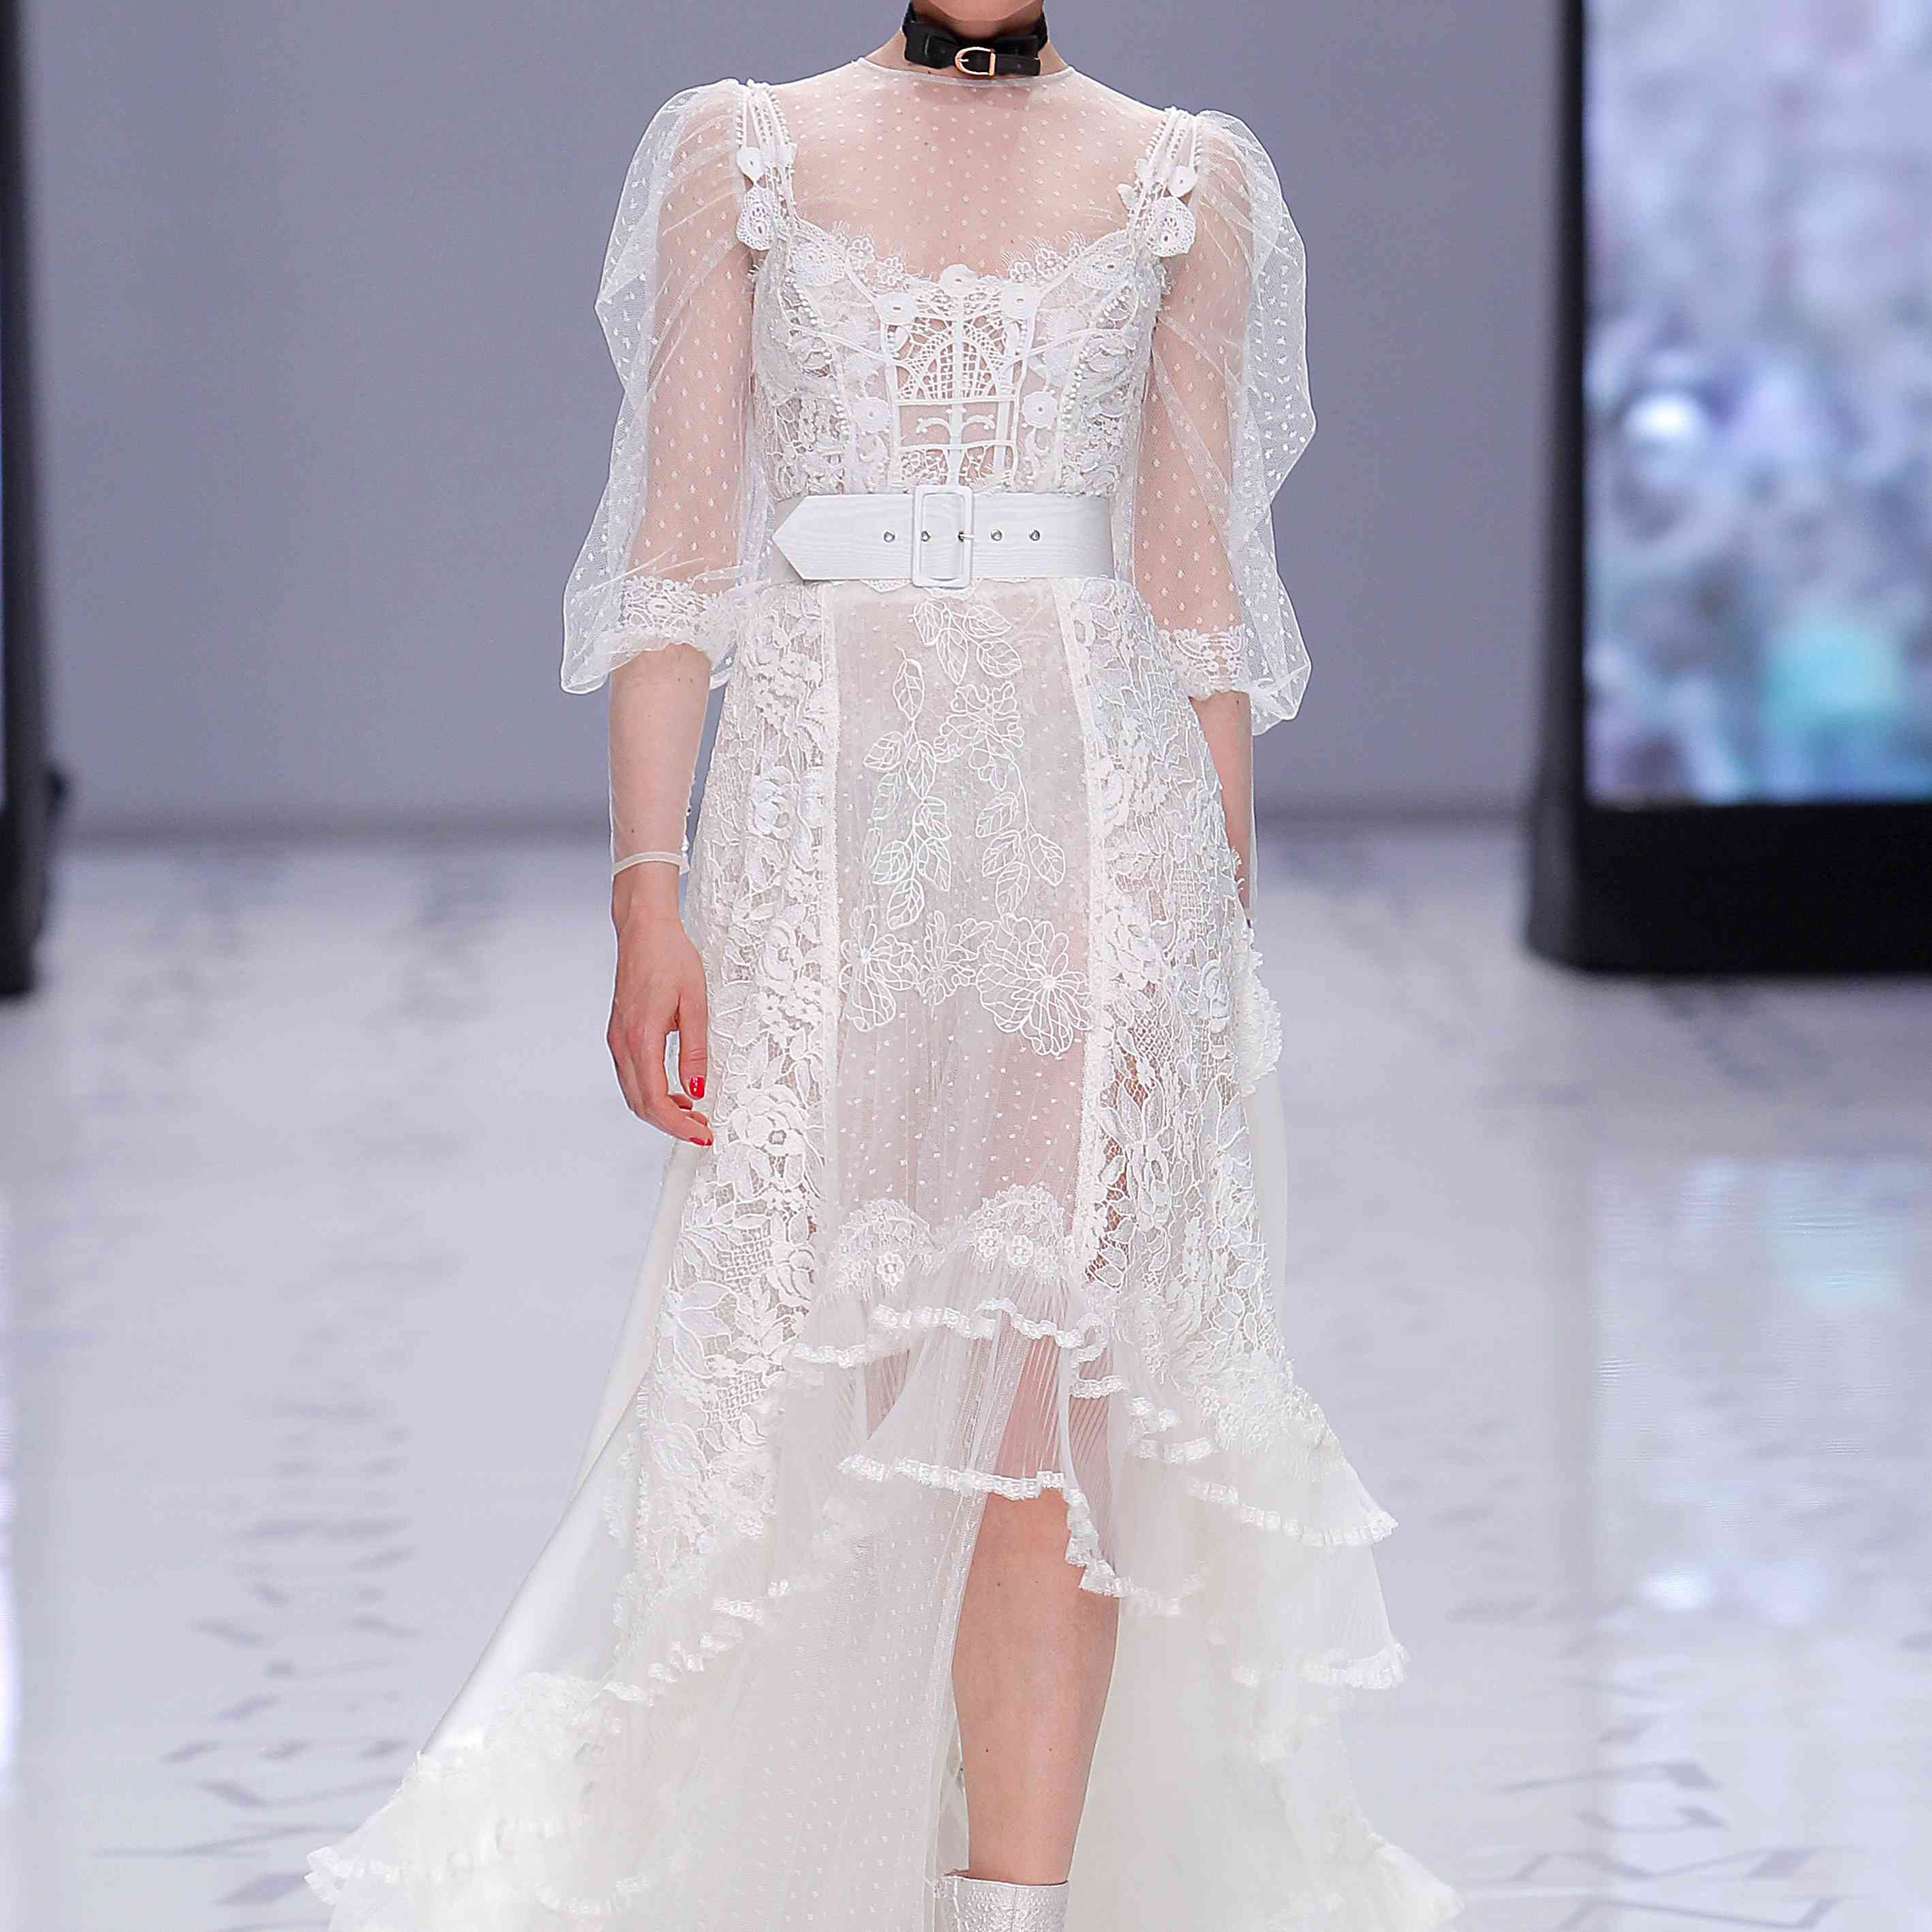 Model in lace and dotted tulle high-low wedding dress with a high neckline, three quarter sleeves, and a ruffled skirt hem